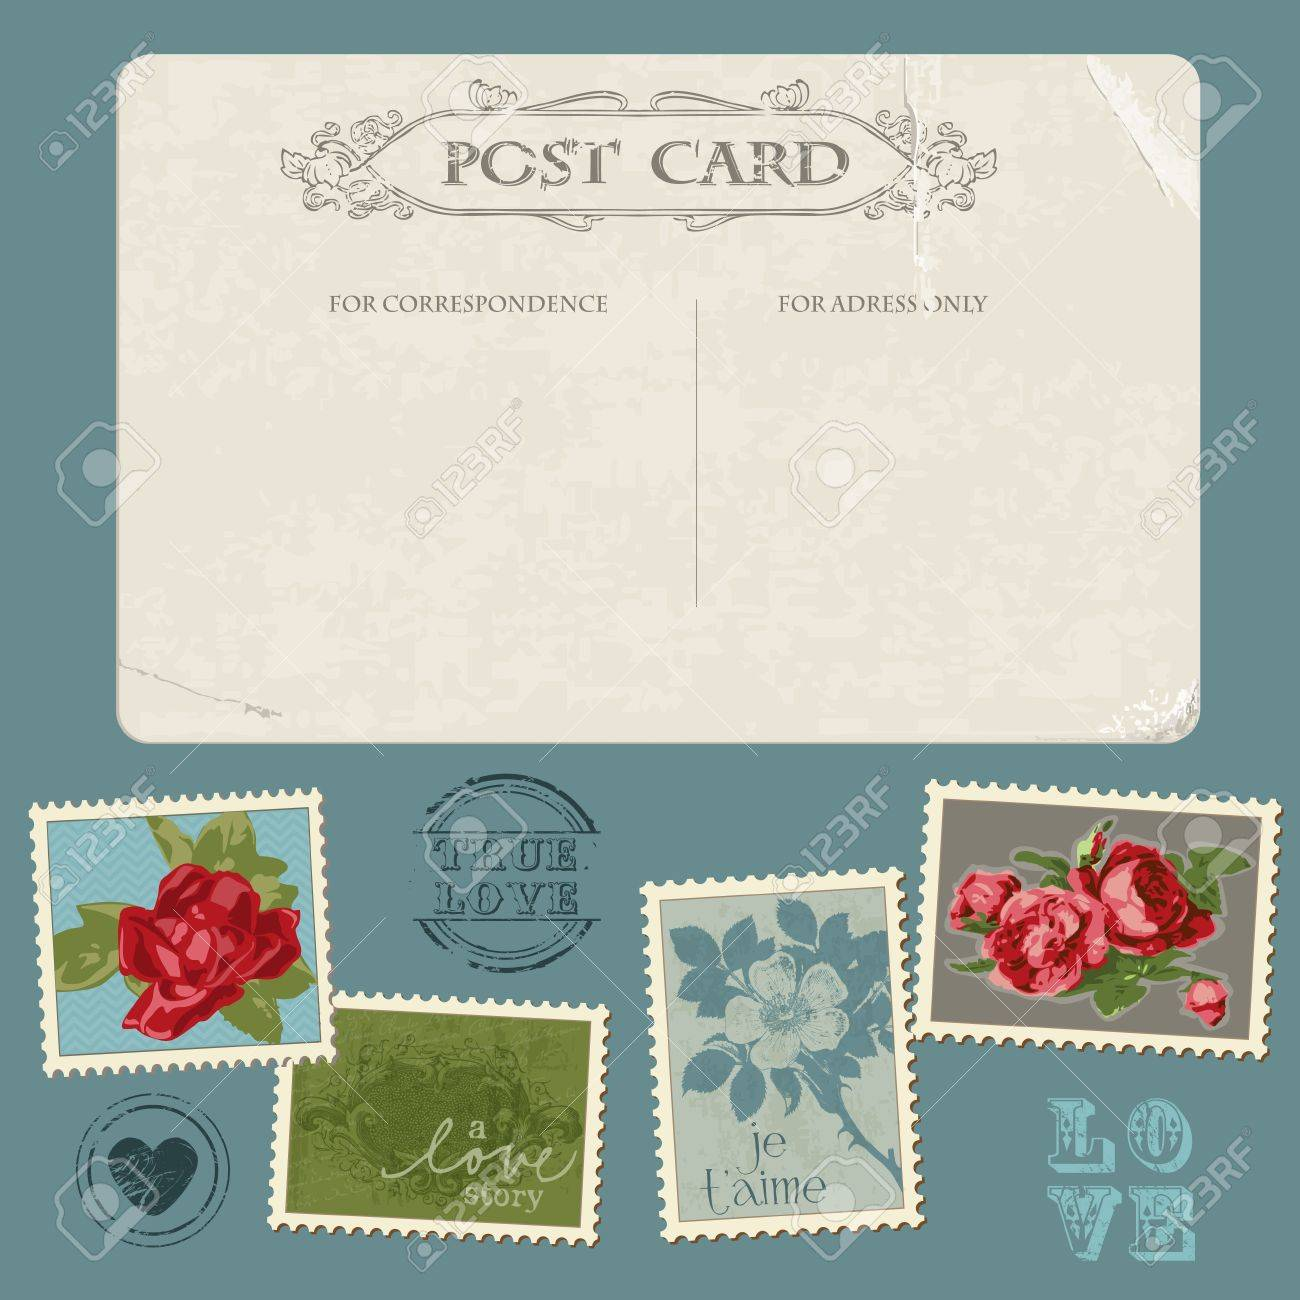 Vintage Postcard with Flower Stamps - for invitation, congratulation in vector Stock Vector - 11480550